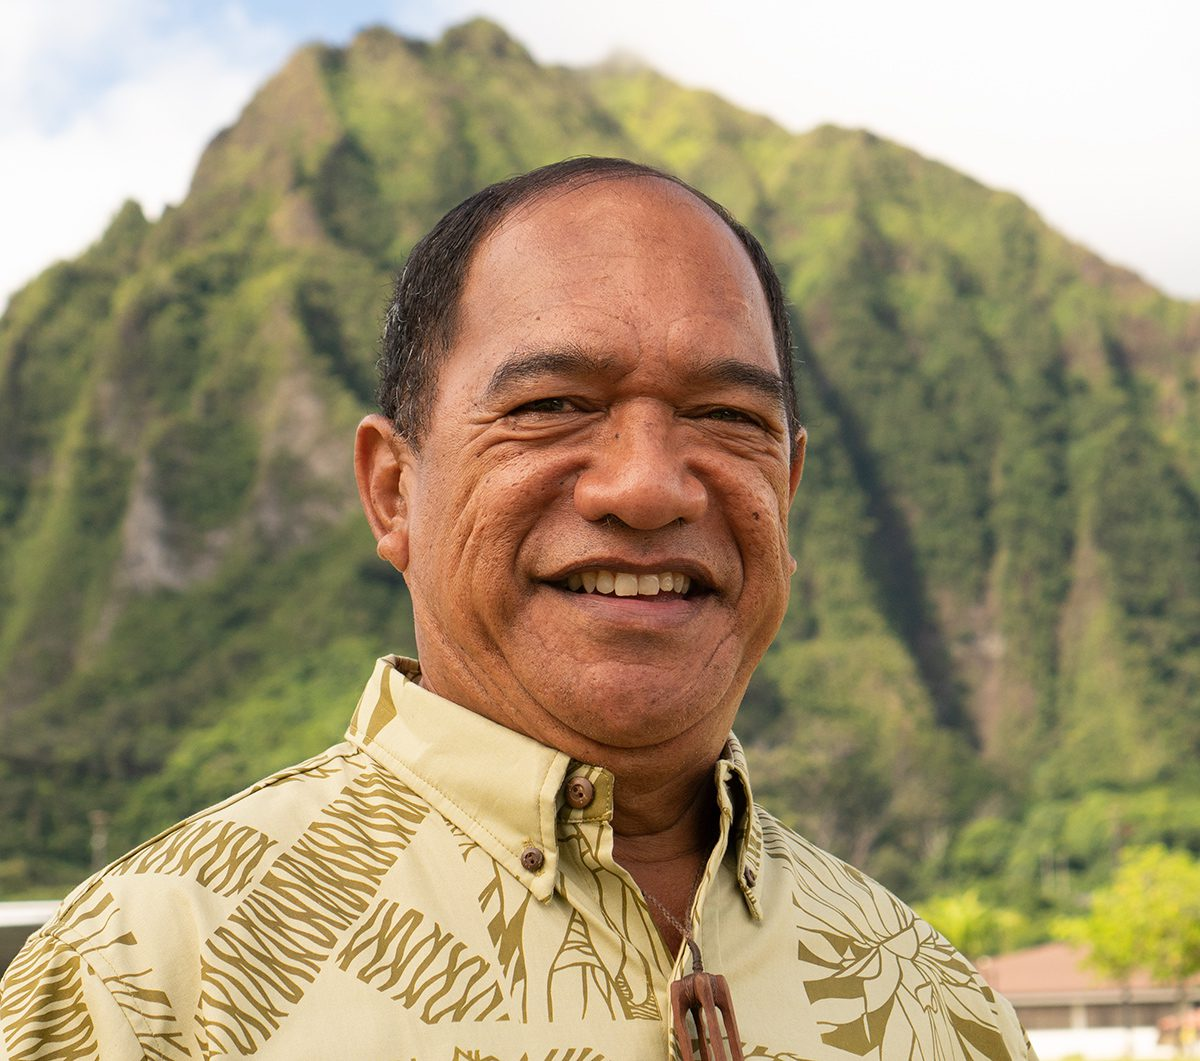 Kimo Adams standing with Koolau mountains behind him in the sun